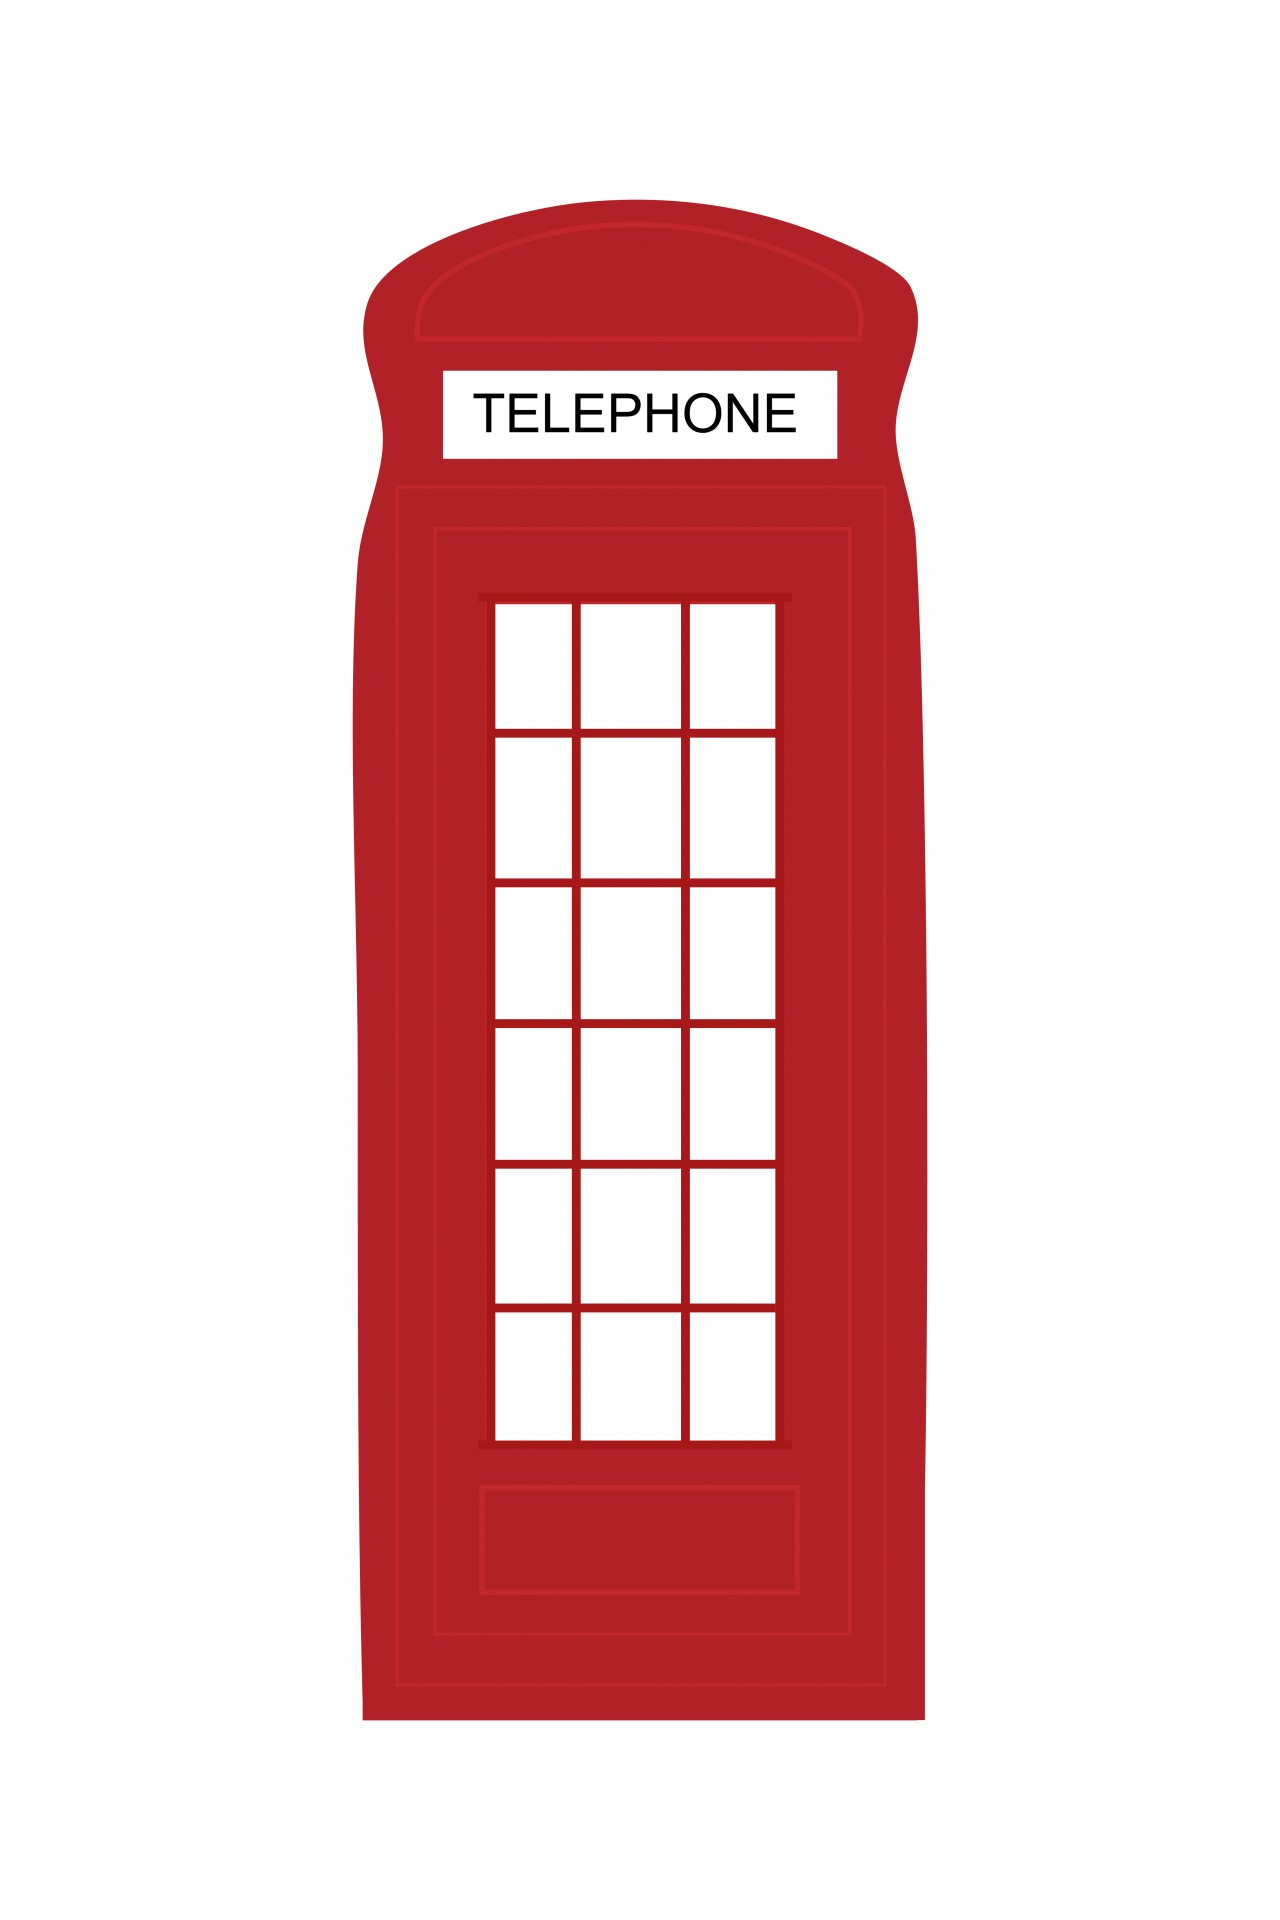 booth clipart telephone london booth